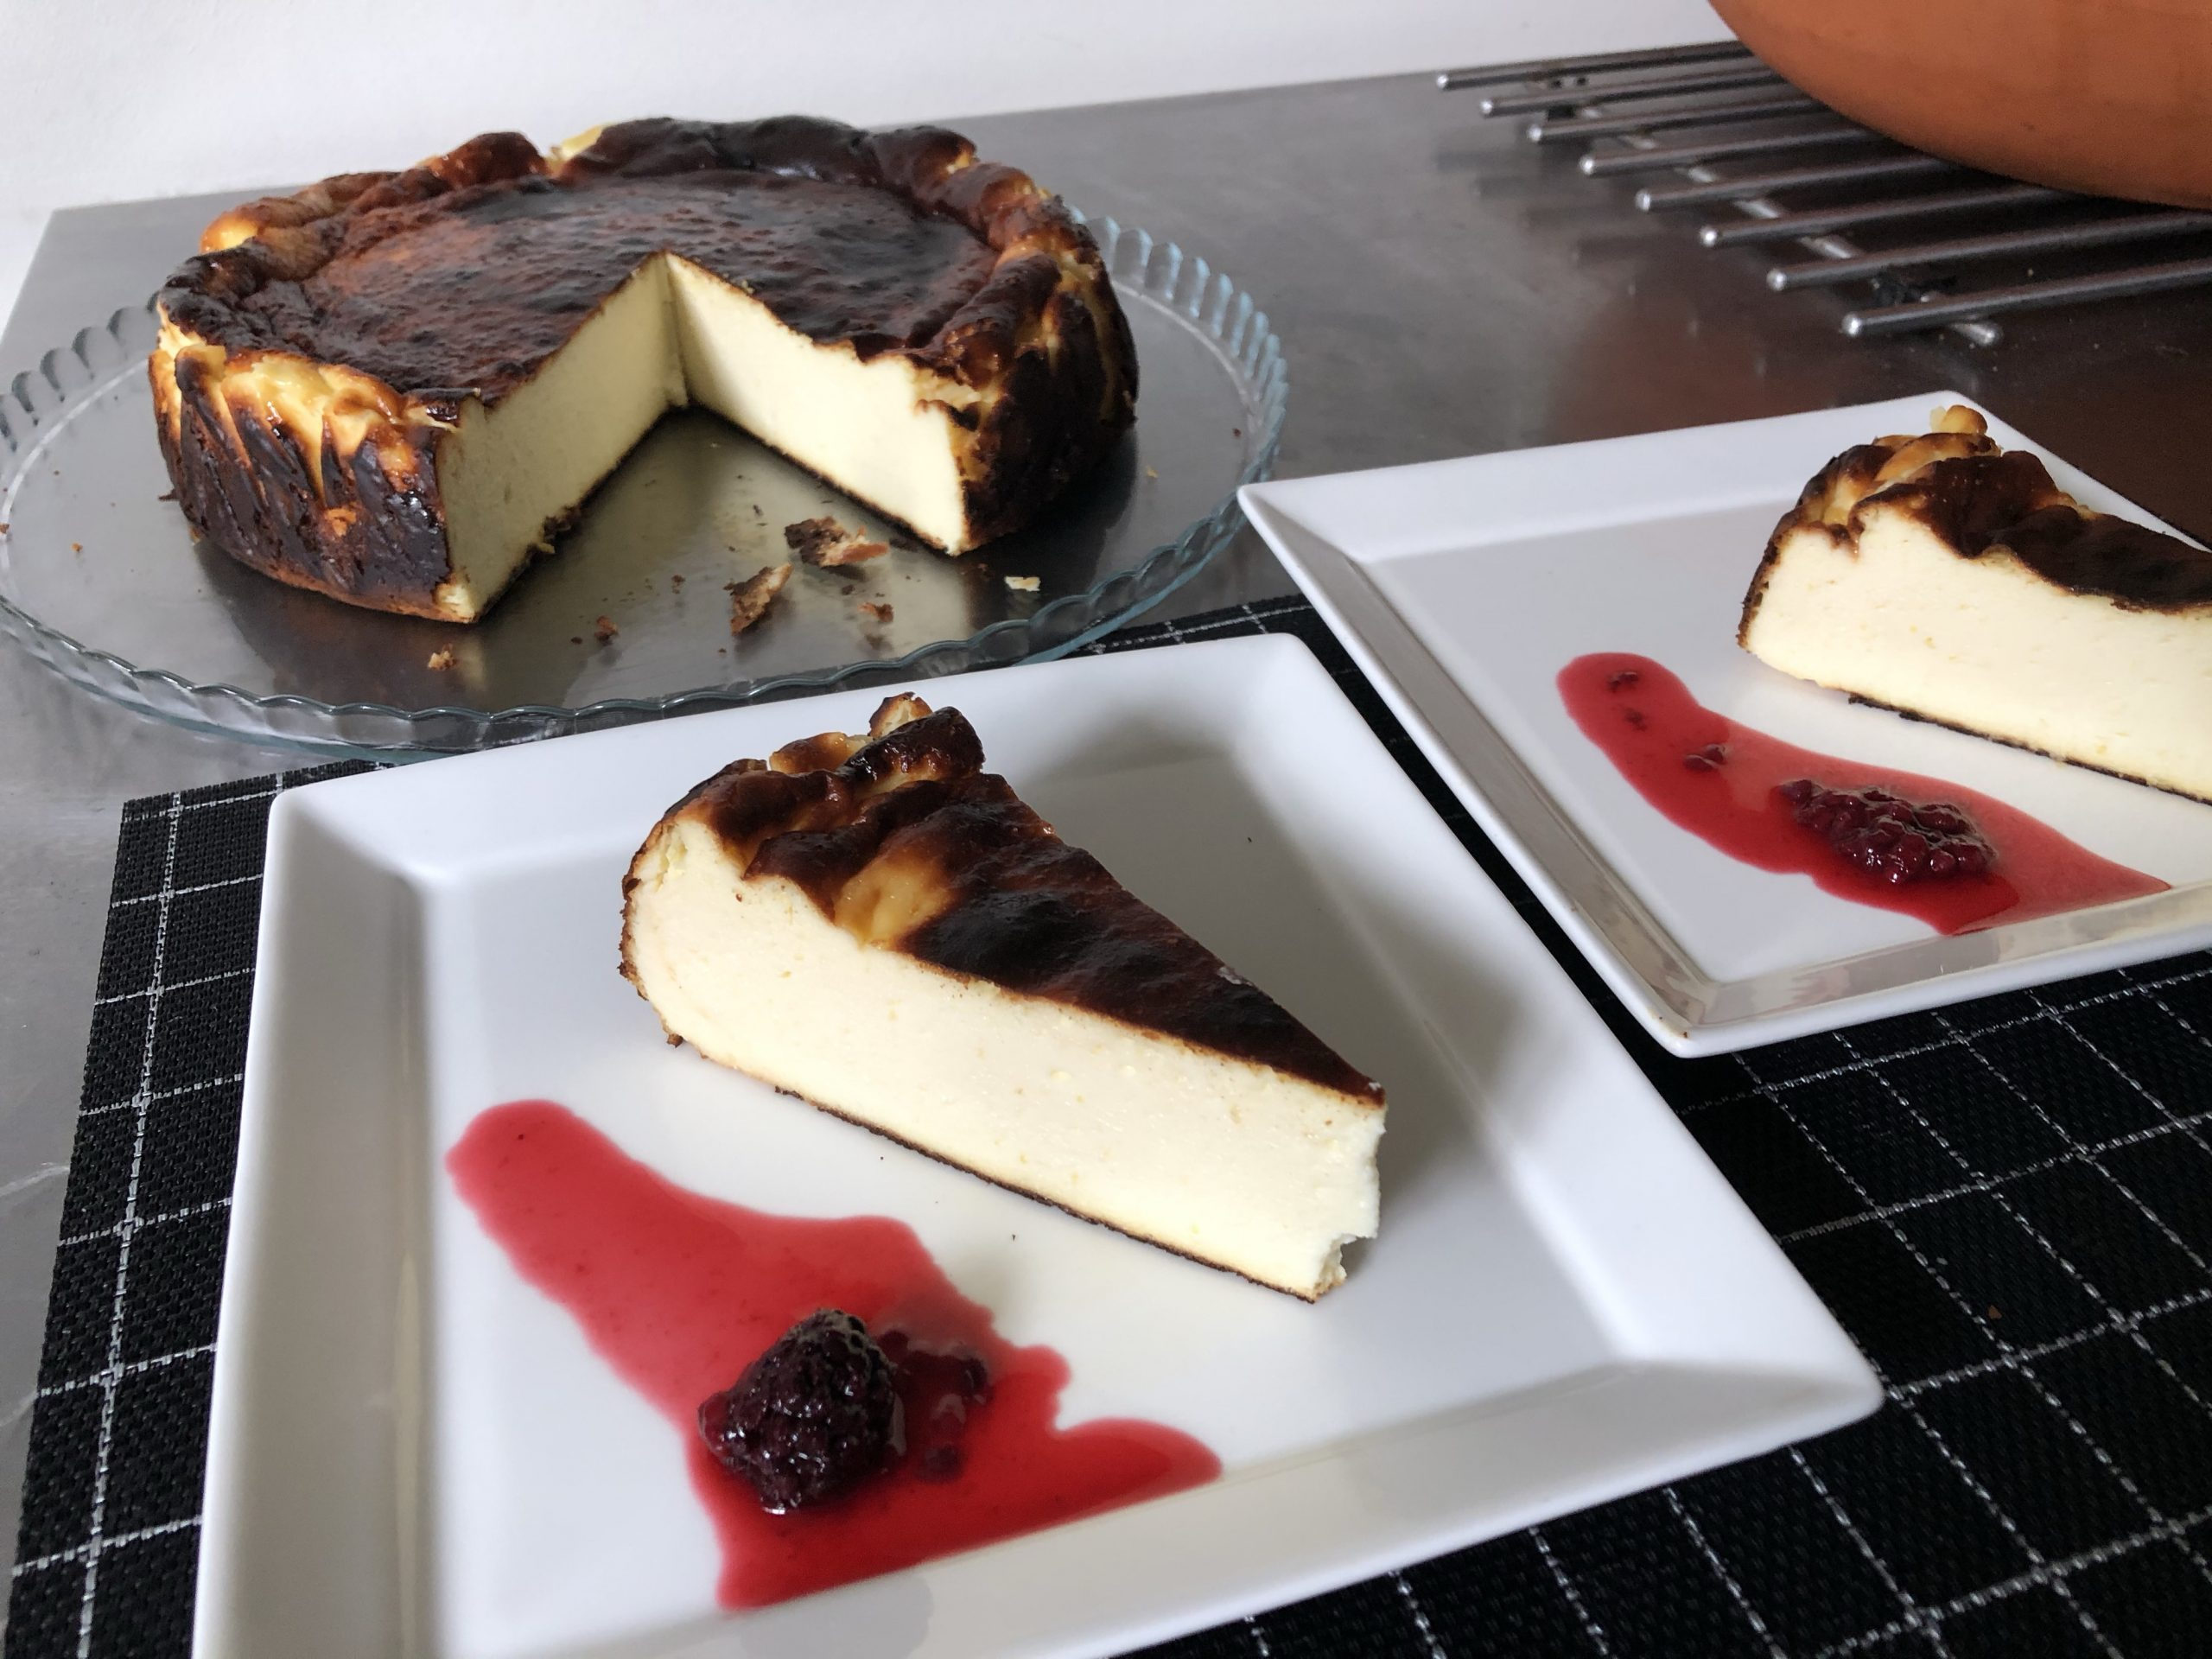 Food Photography: Basque Burnt Cheesecake